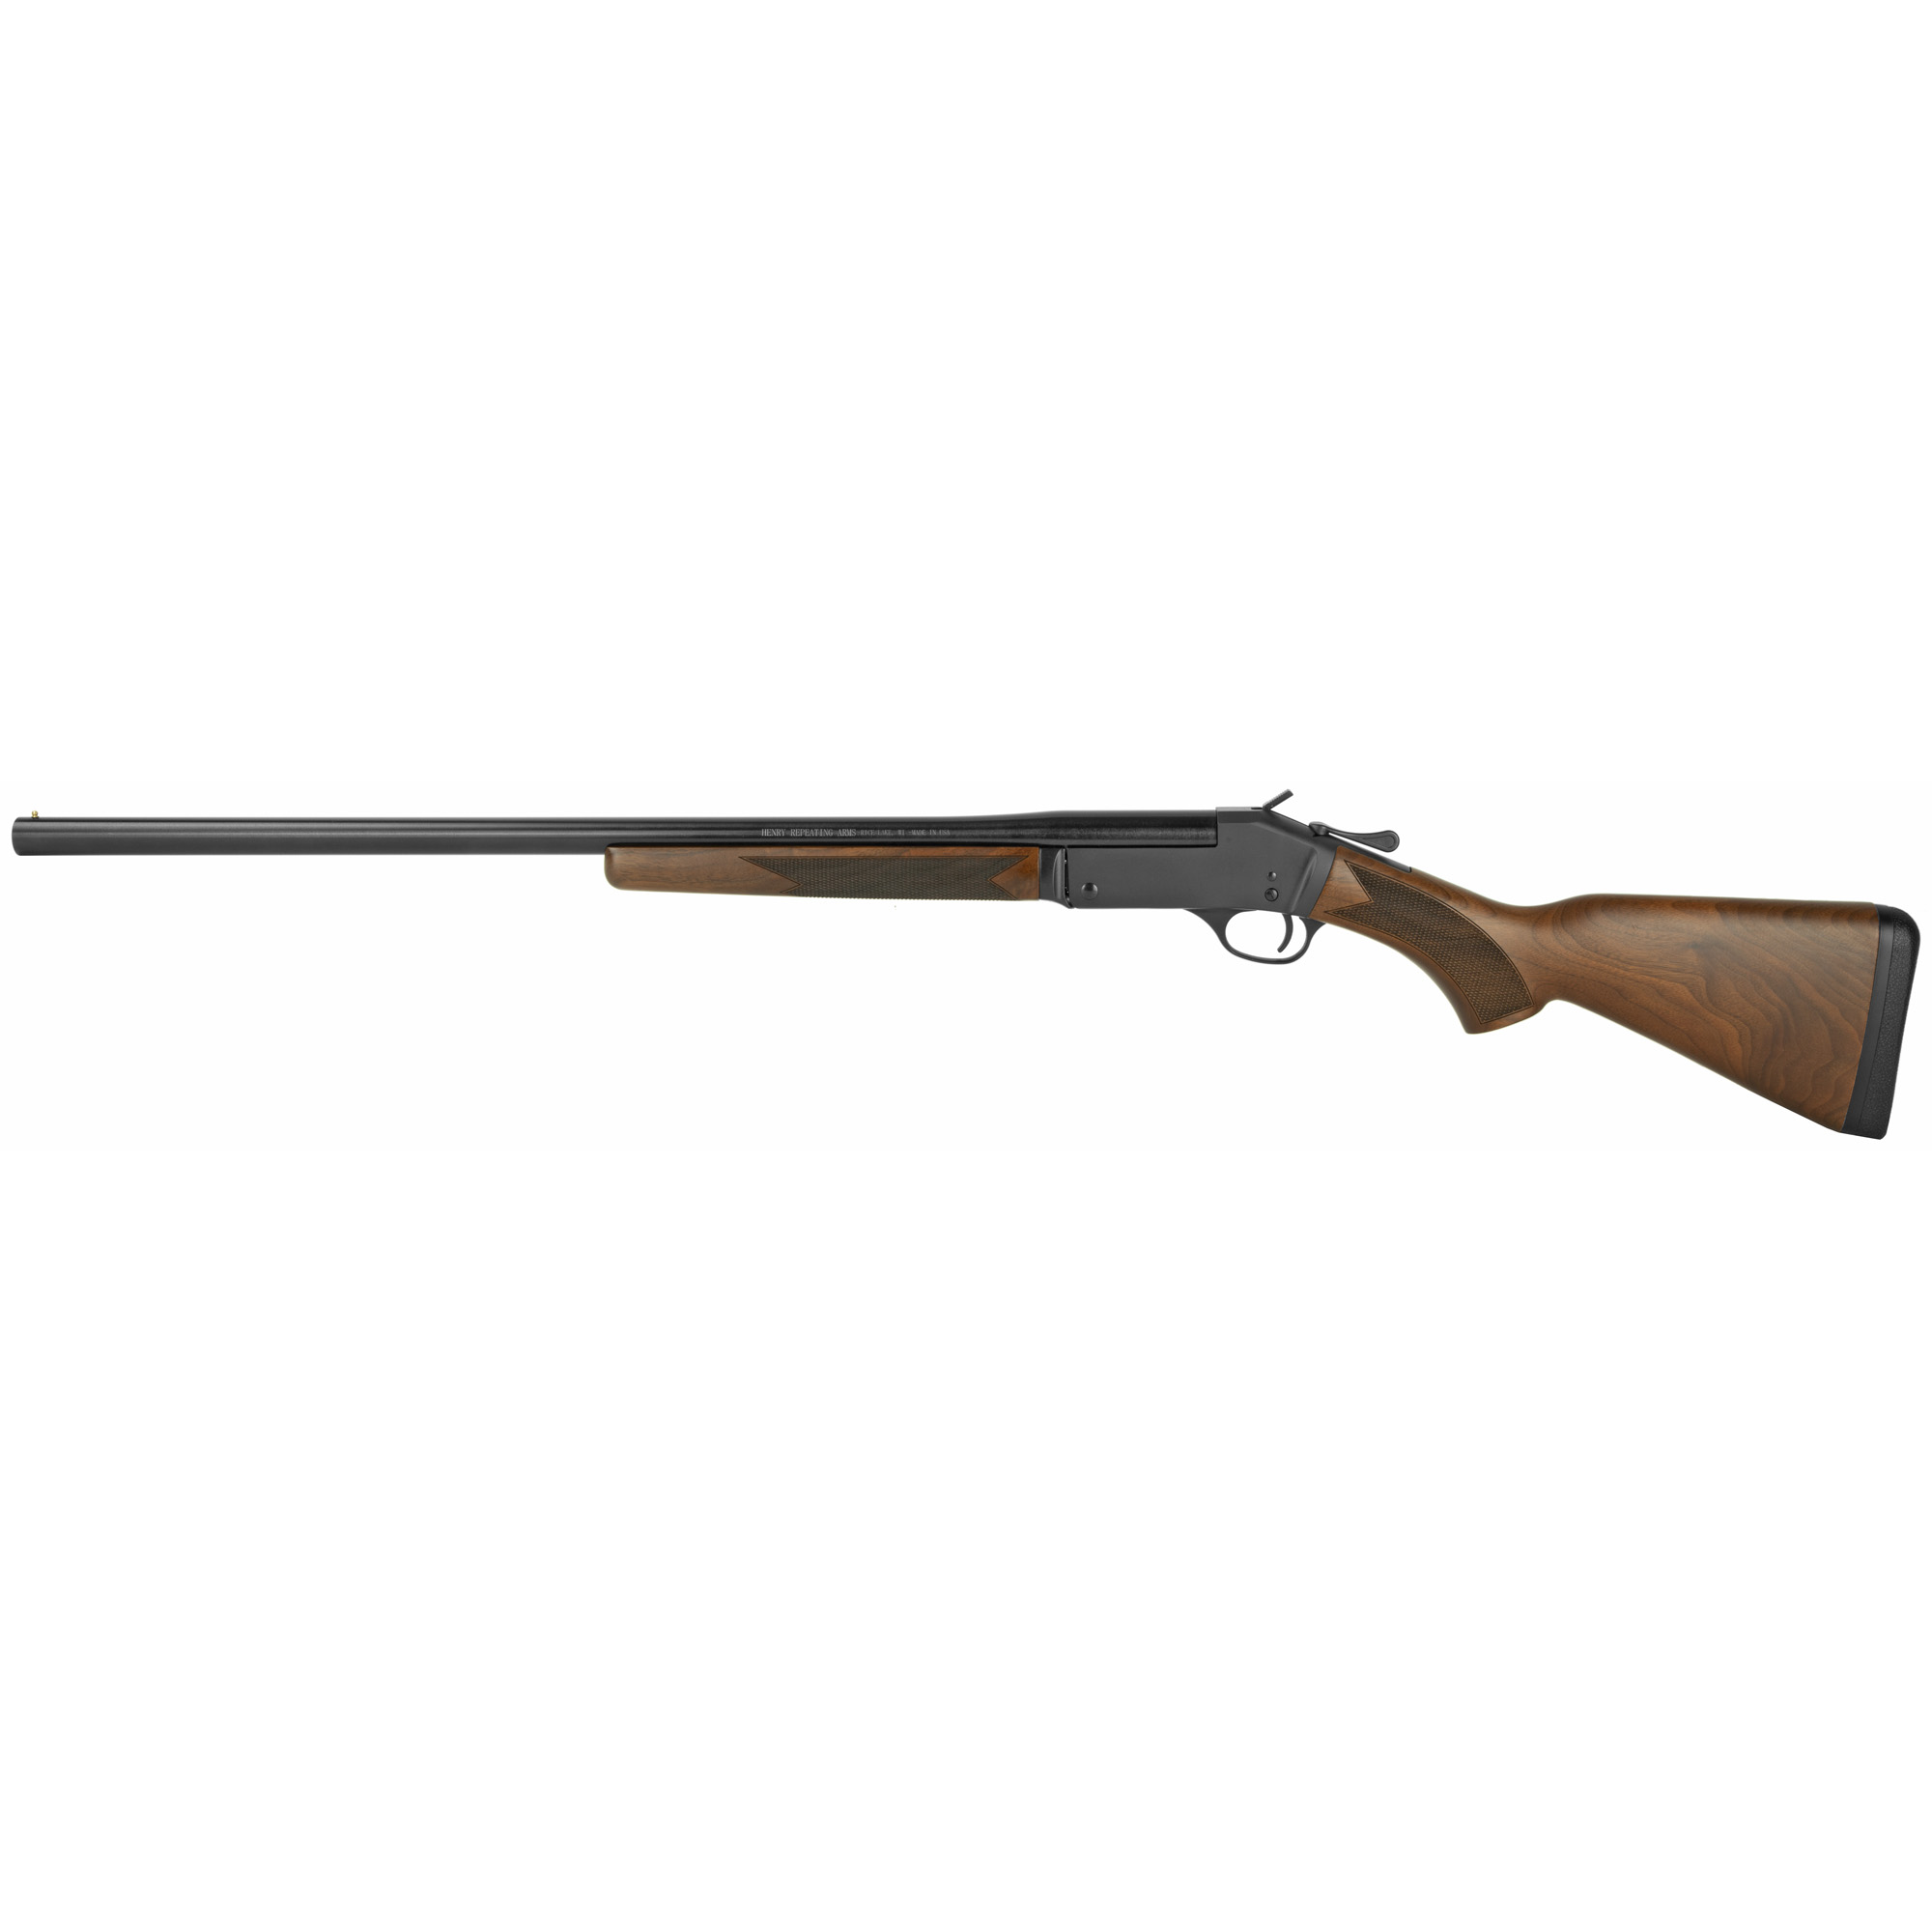 """Whether you like the simple operation"""" the reliable action"""" the nostalgia factor of hunting with a one-shot shotgun"""" or the uncomplicated first-gun introduction for a new shotgunner"""" Henry built this shotgun for a wide variety of shooters."""